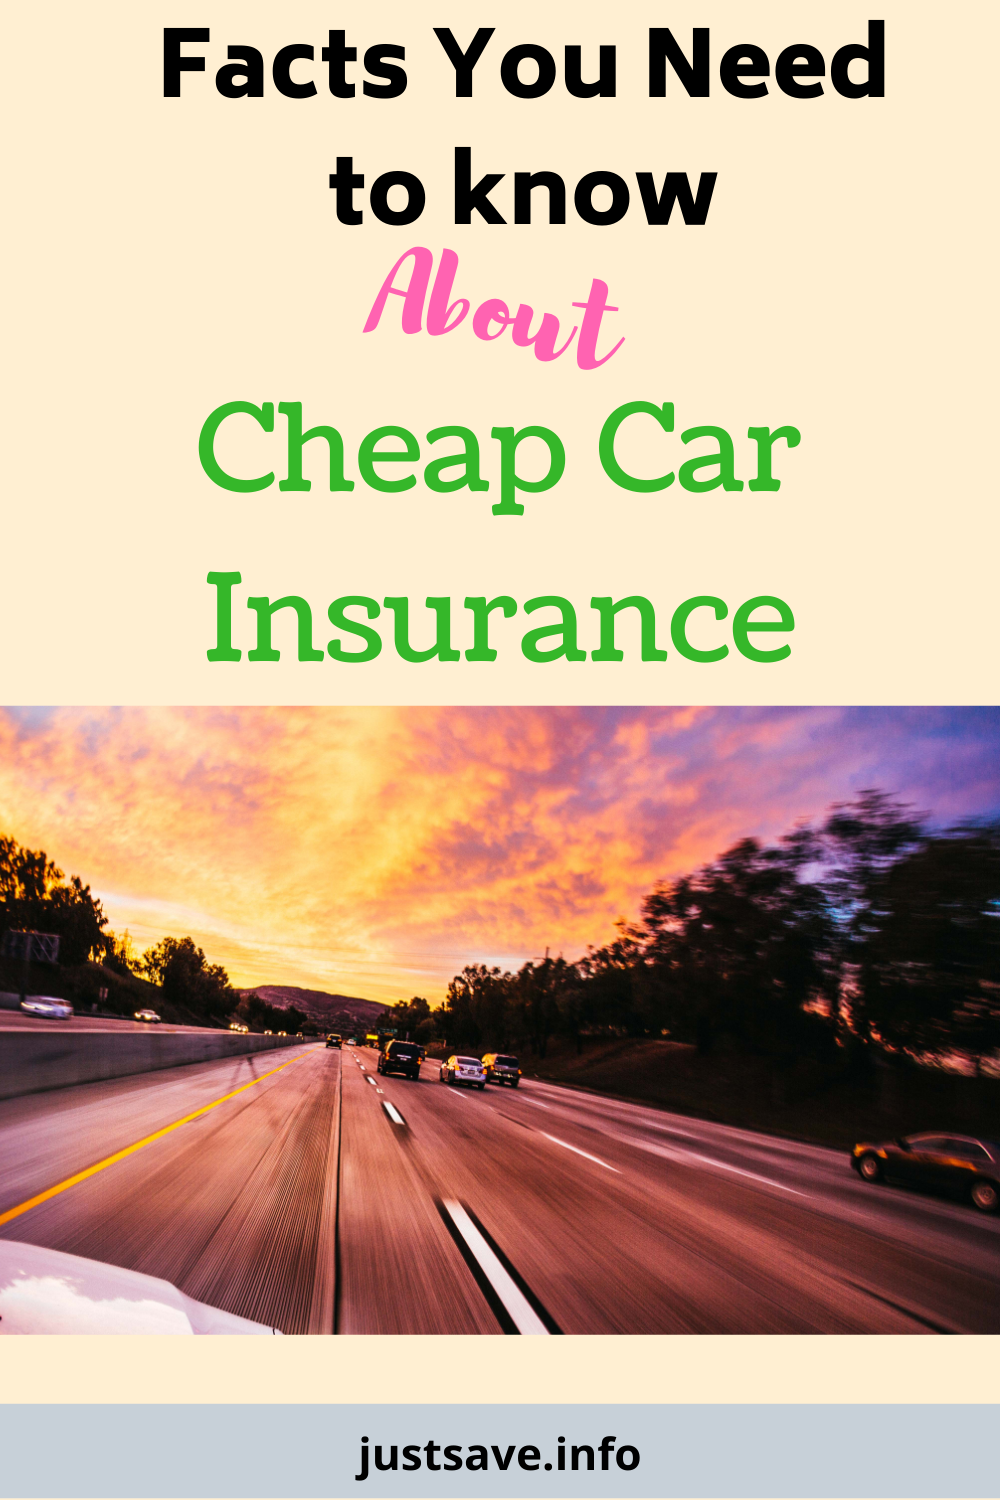 Facts You Need To Know About The Cheap Car Insurance Justsave In